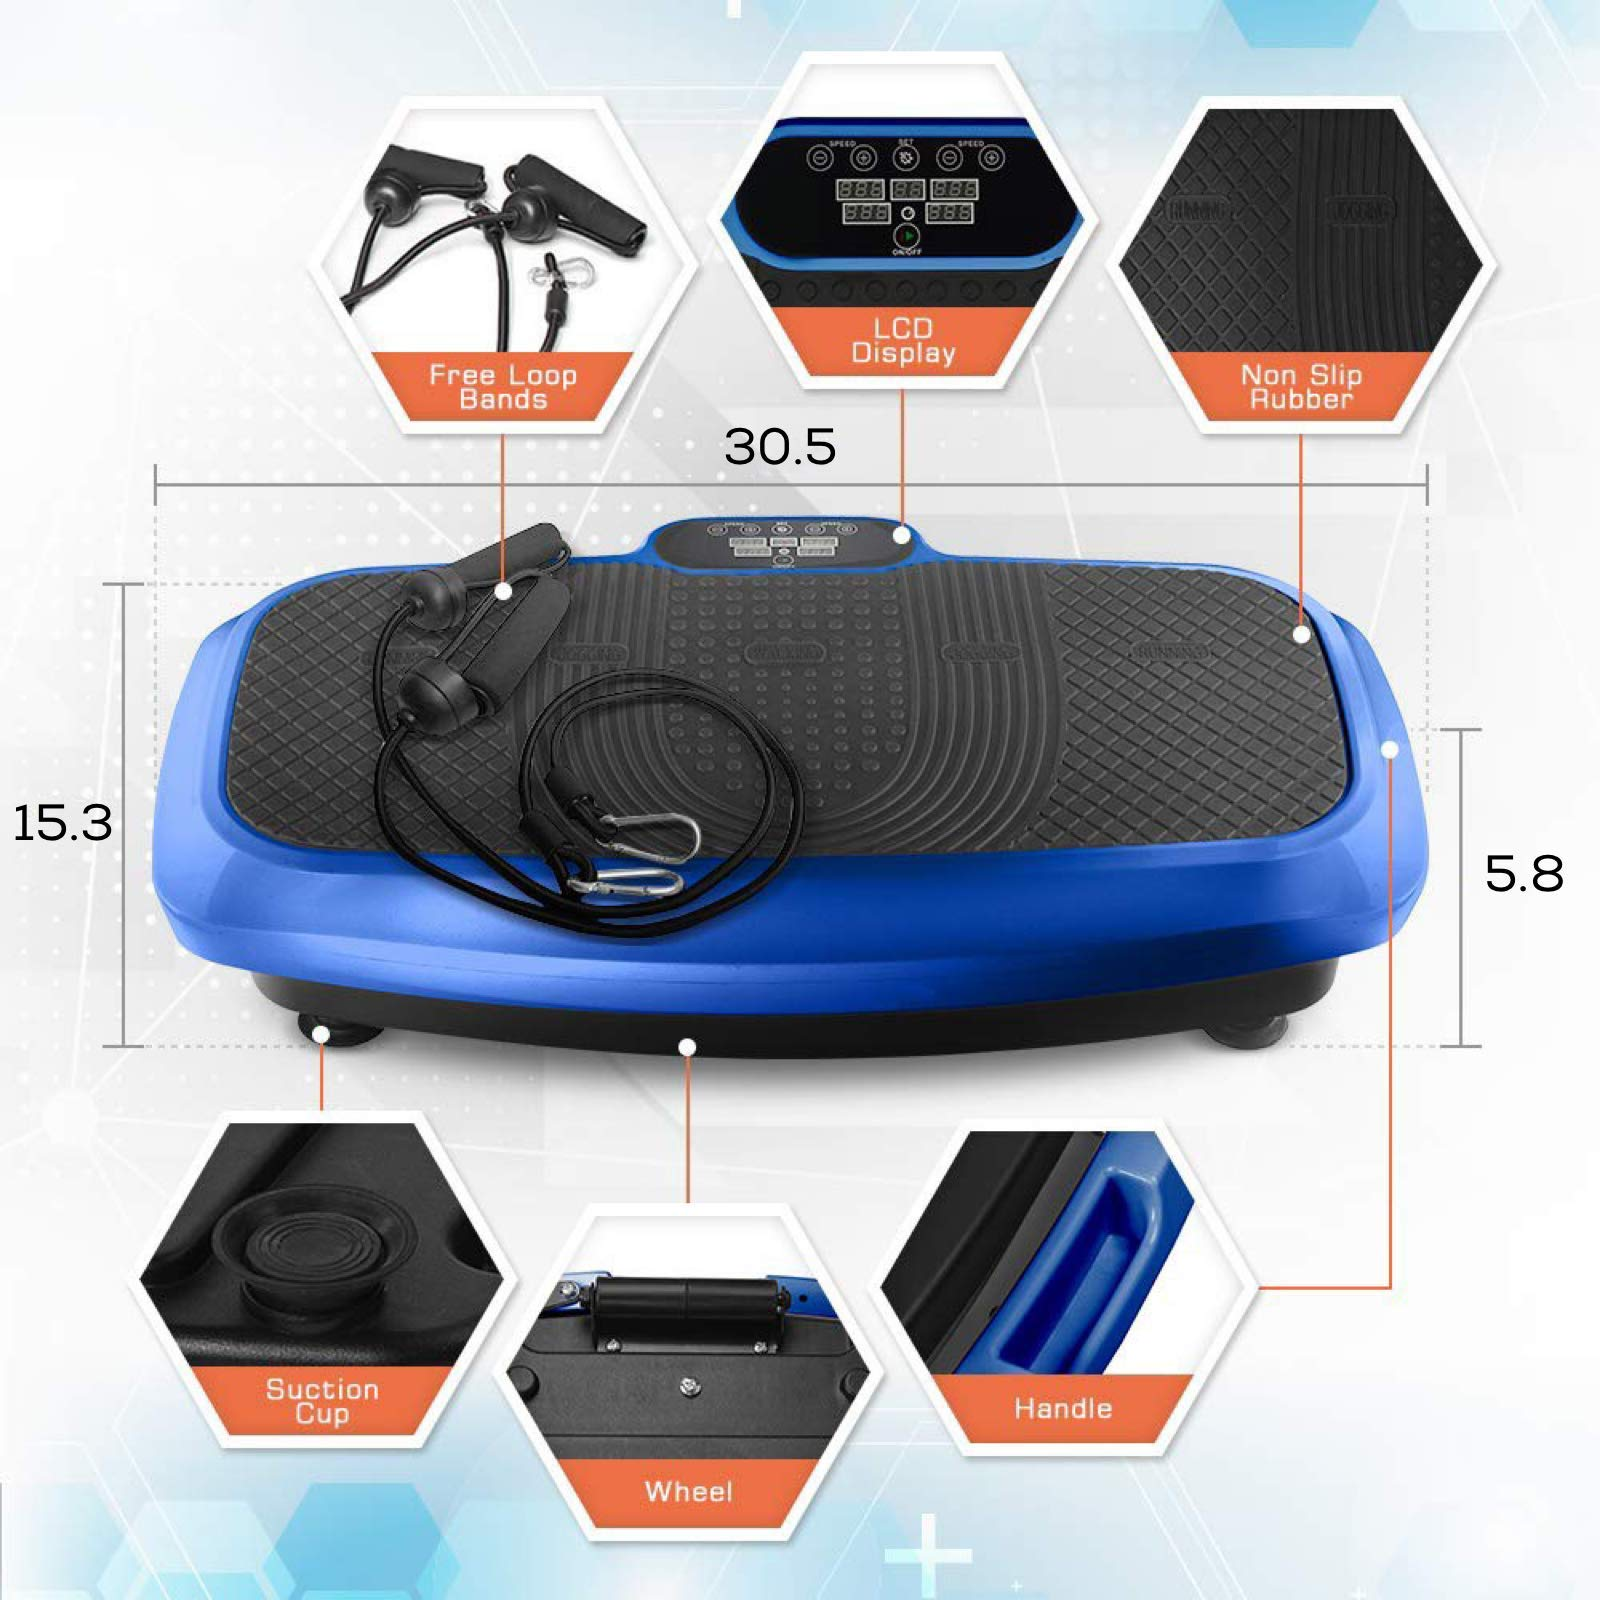 LifePro 3D Vibration Plate Exercise Machine - Dual Motor Oscillation, Pulsation + 3D Motion Vibration Platform   Full Whole Body Vibration Machine for Home Fitness, Weight Loss, Toning & Shaping. by LifePro (Image #5)